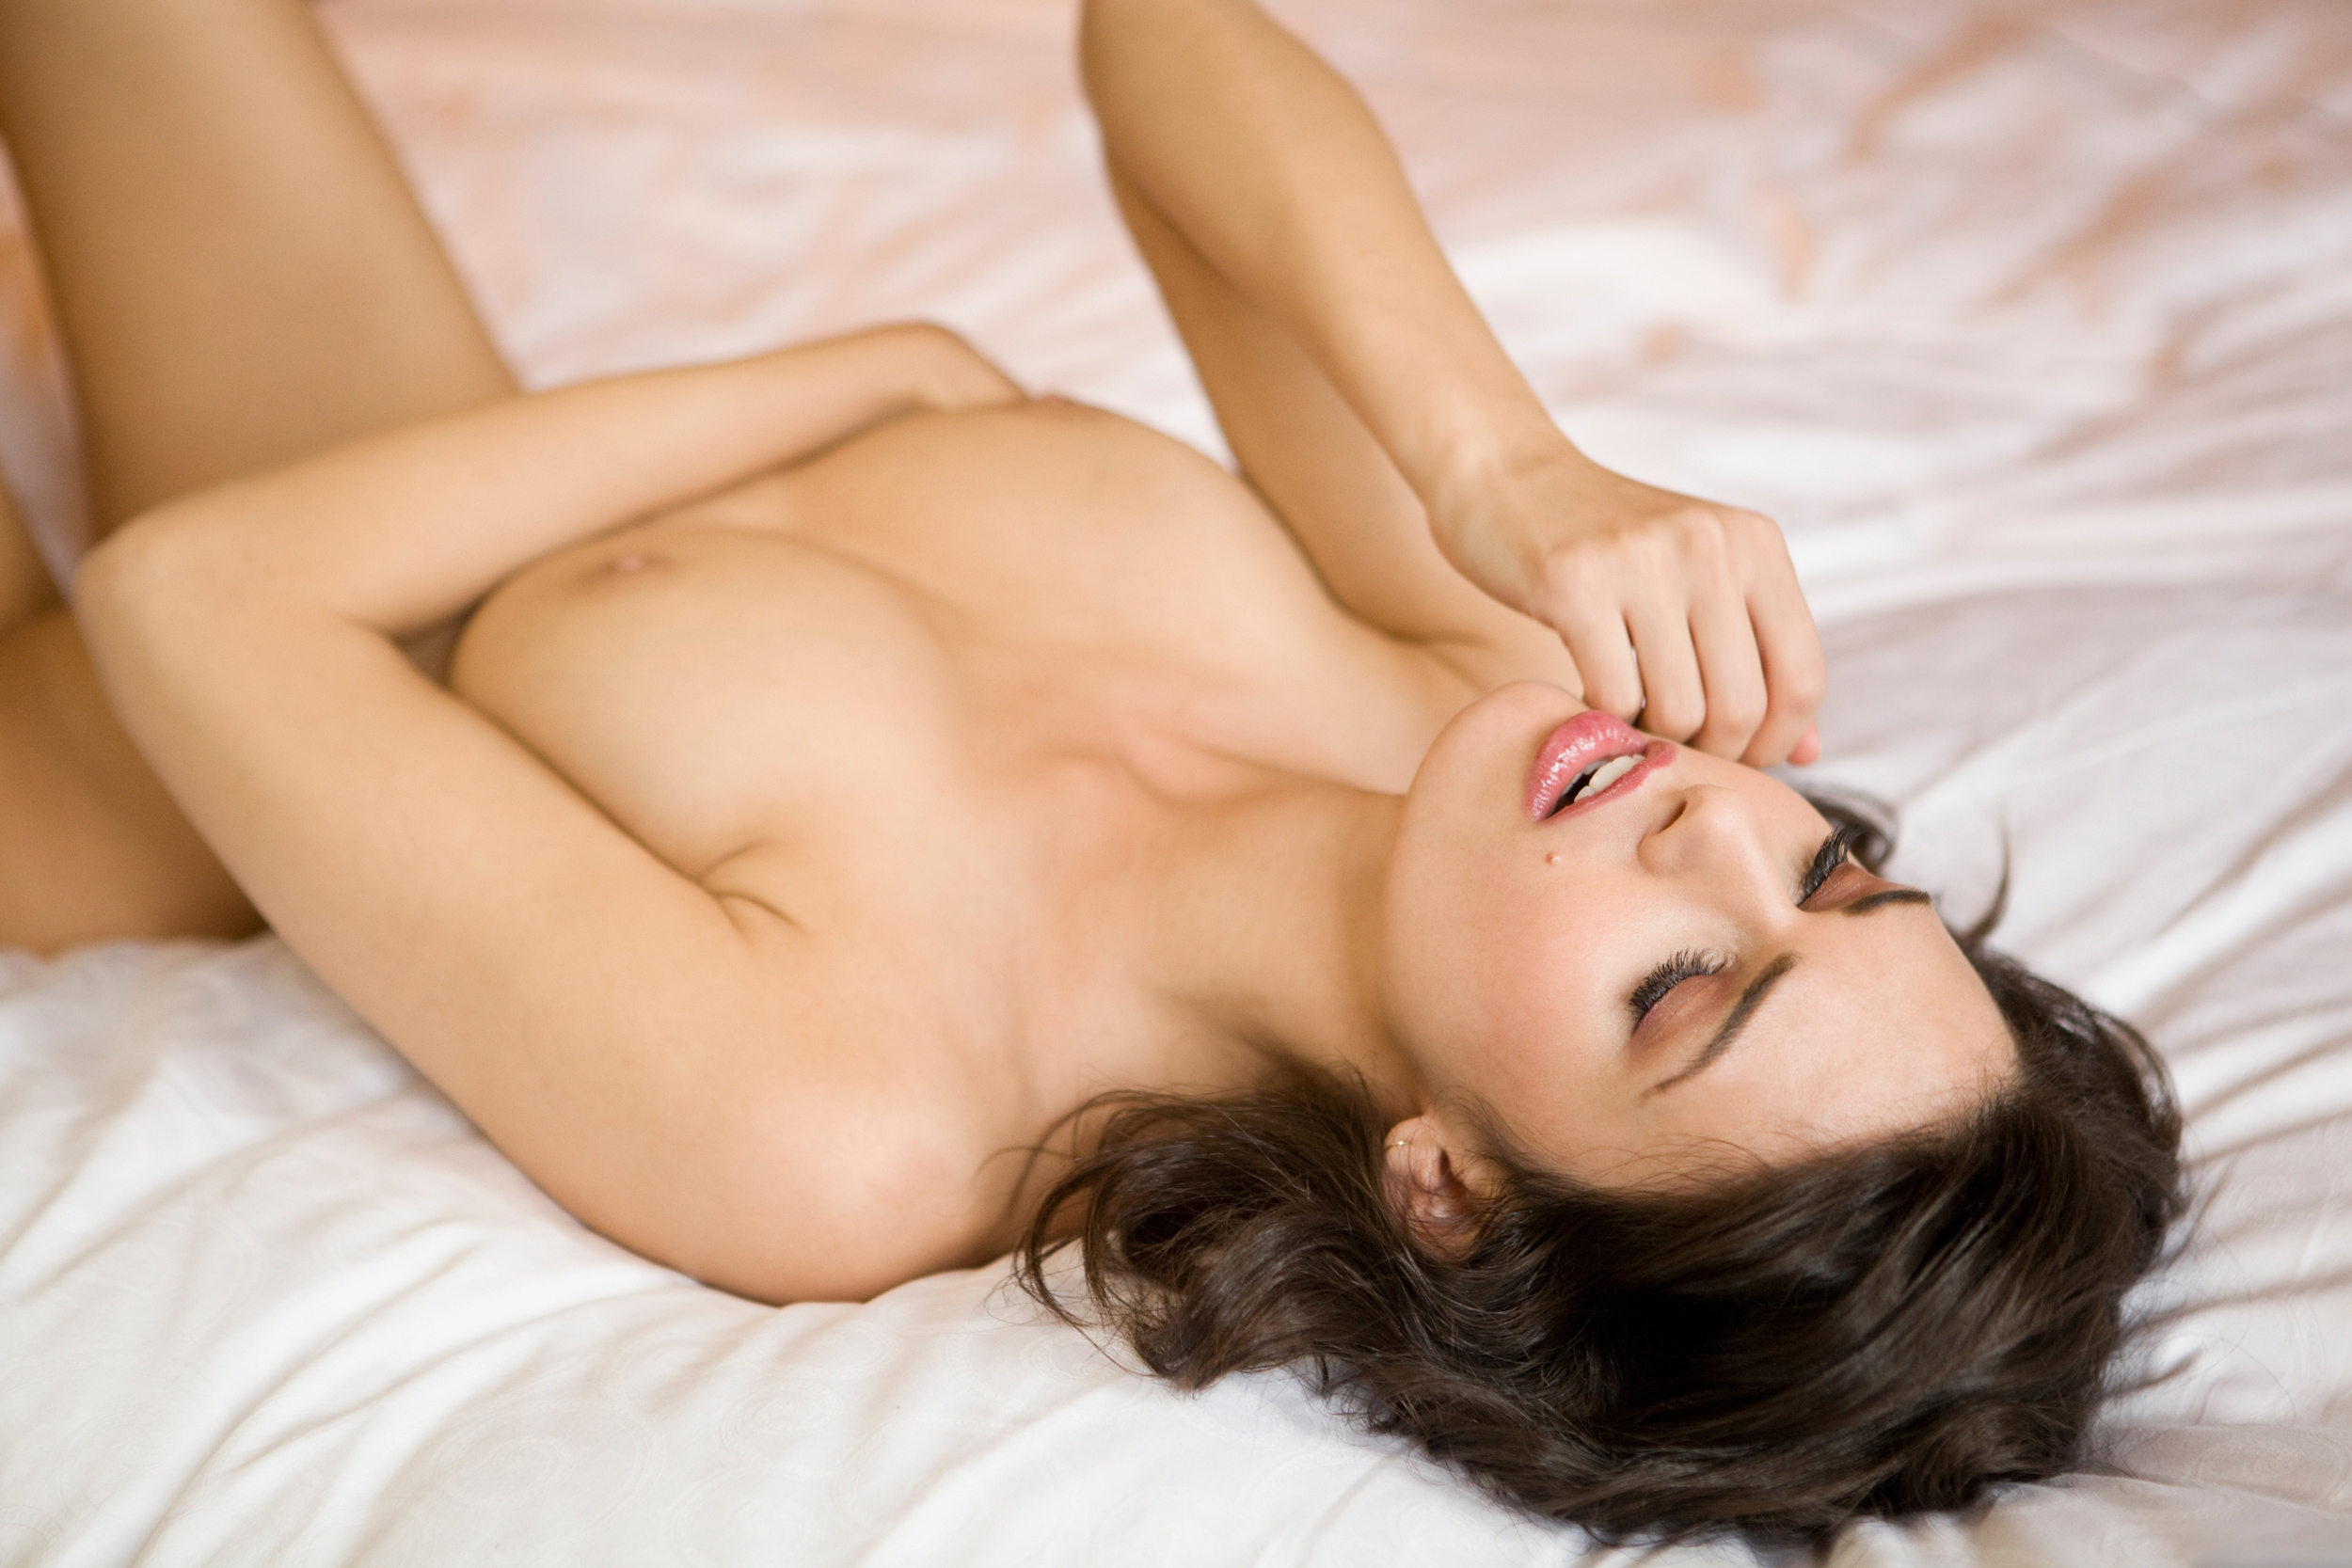 eating-naked-on-bed